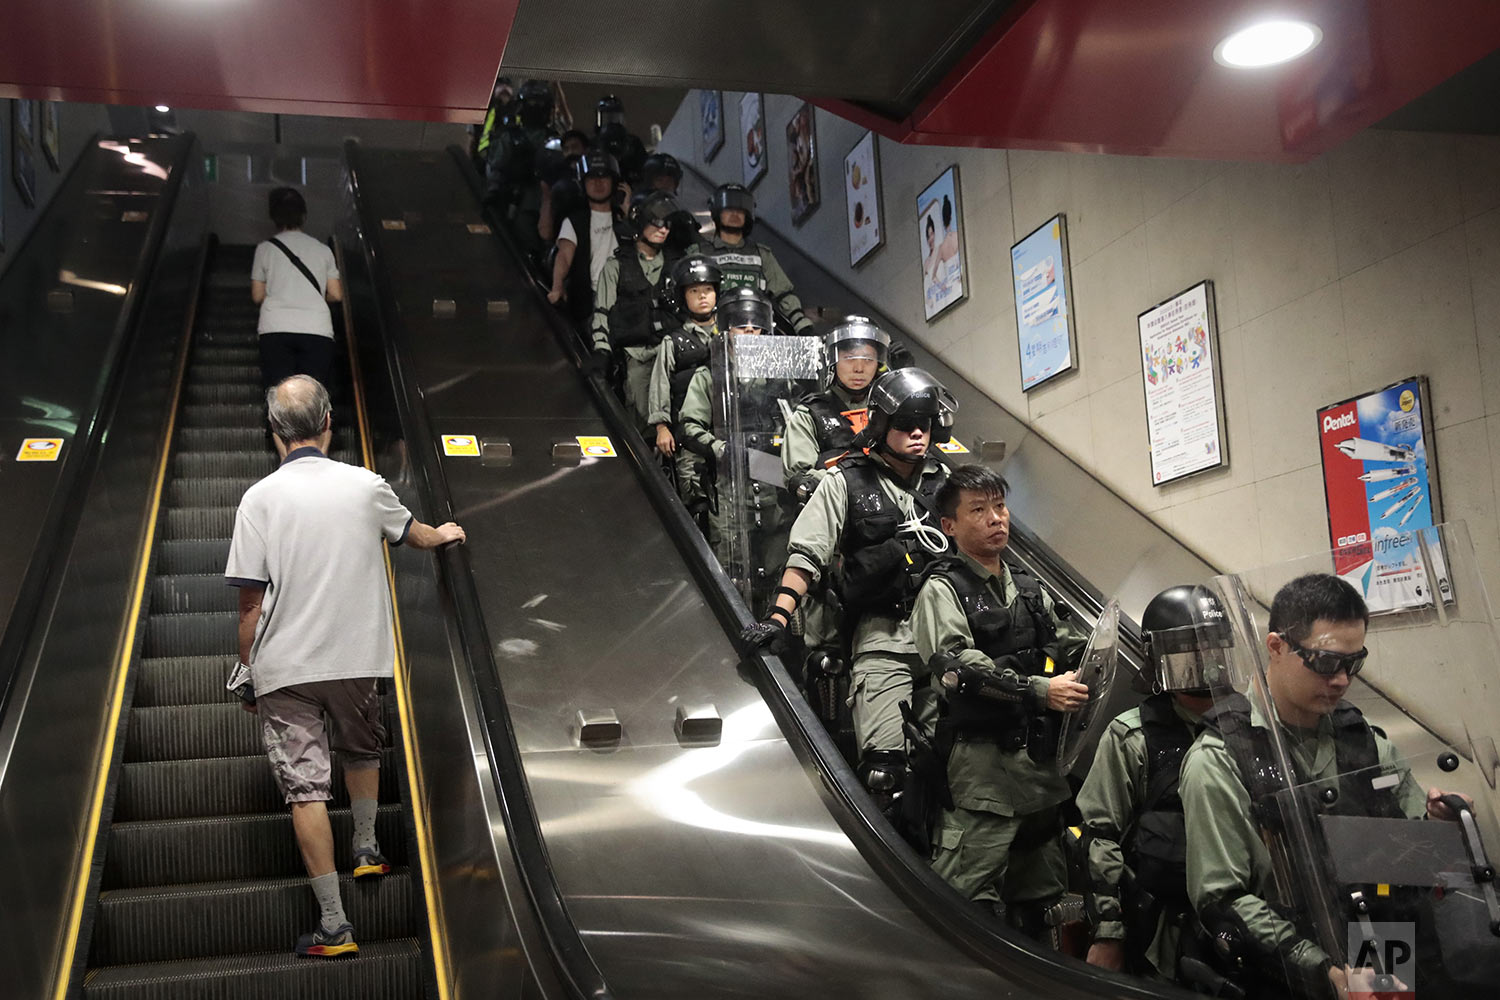 Two commuters ride an escalator at a train station past police officers in riot gear deployed to arrest protesters in Hong Kong, Monday, Sept. 2, 2019. (AP Photo/Jae C. Hong)